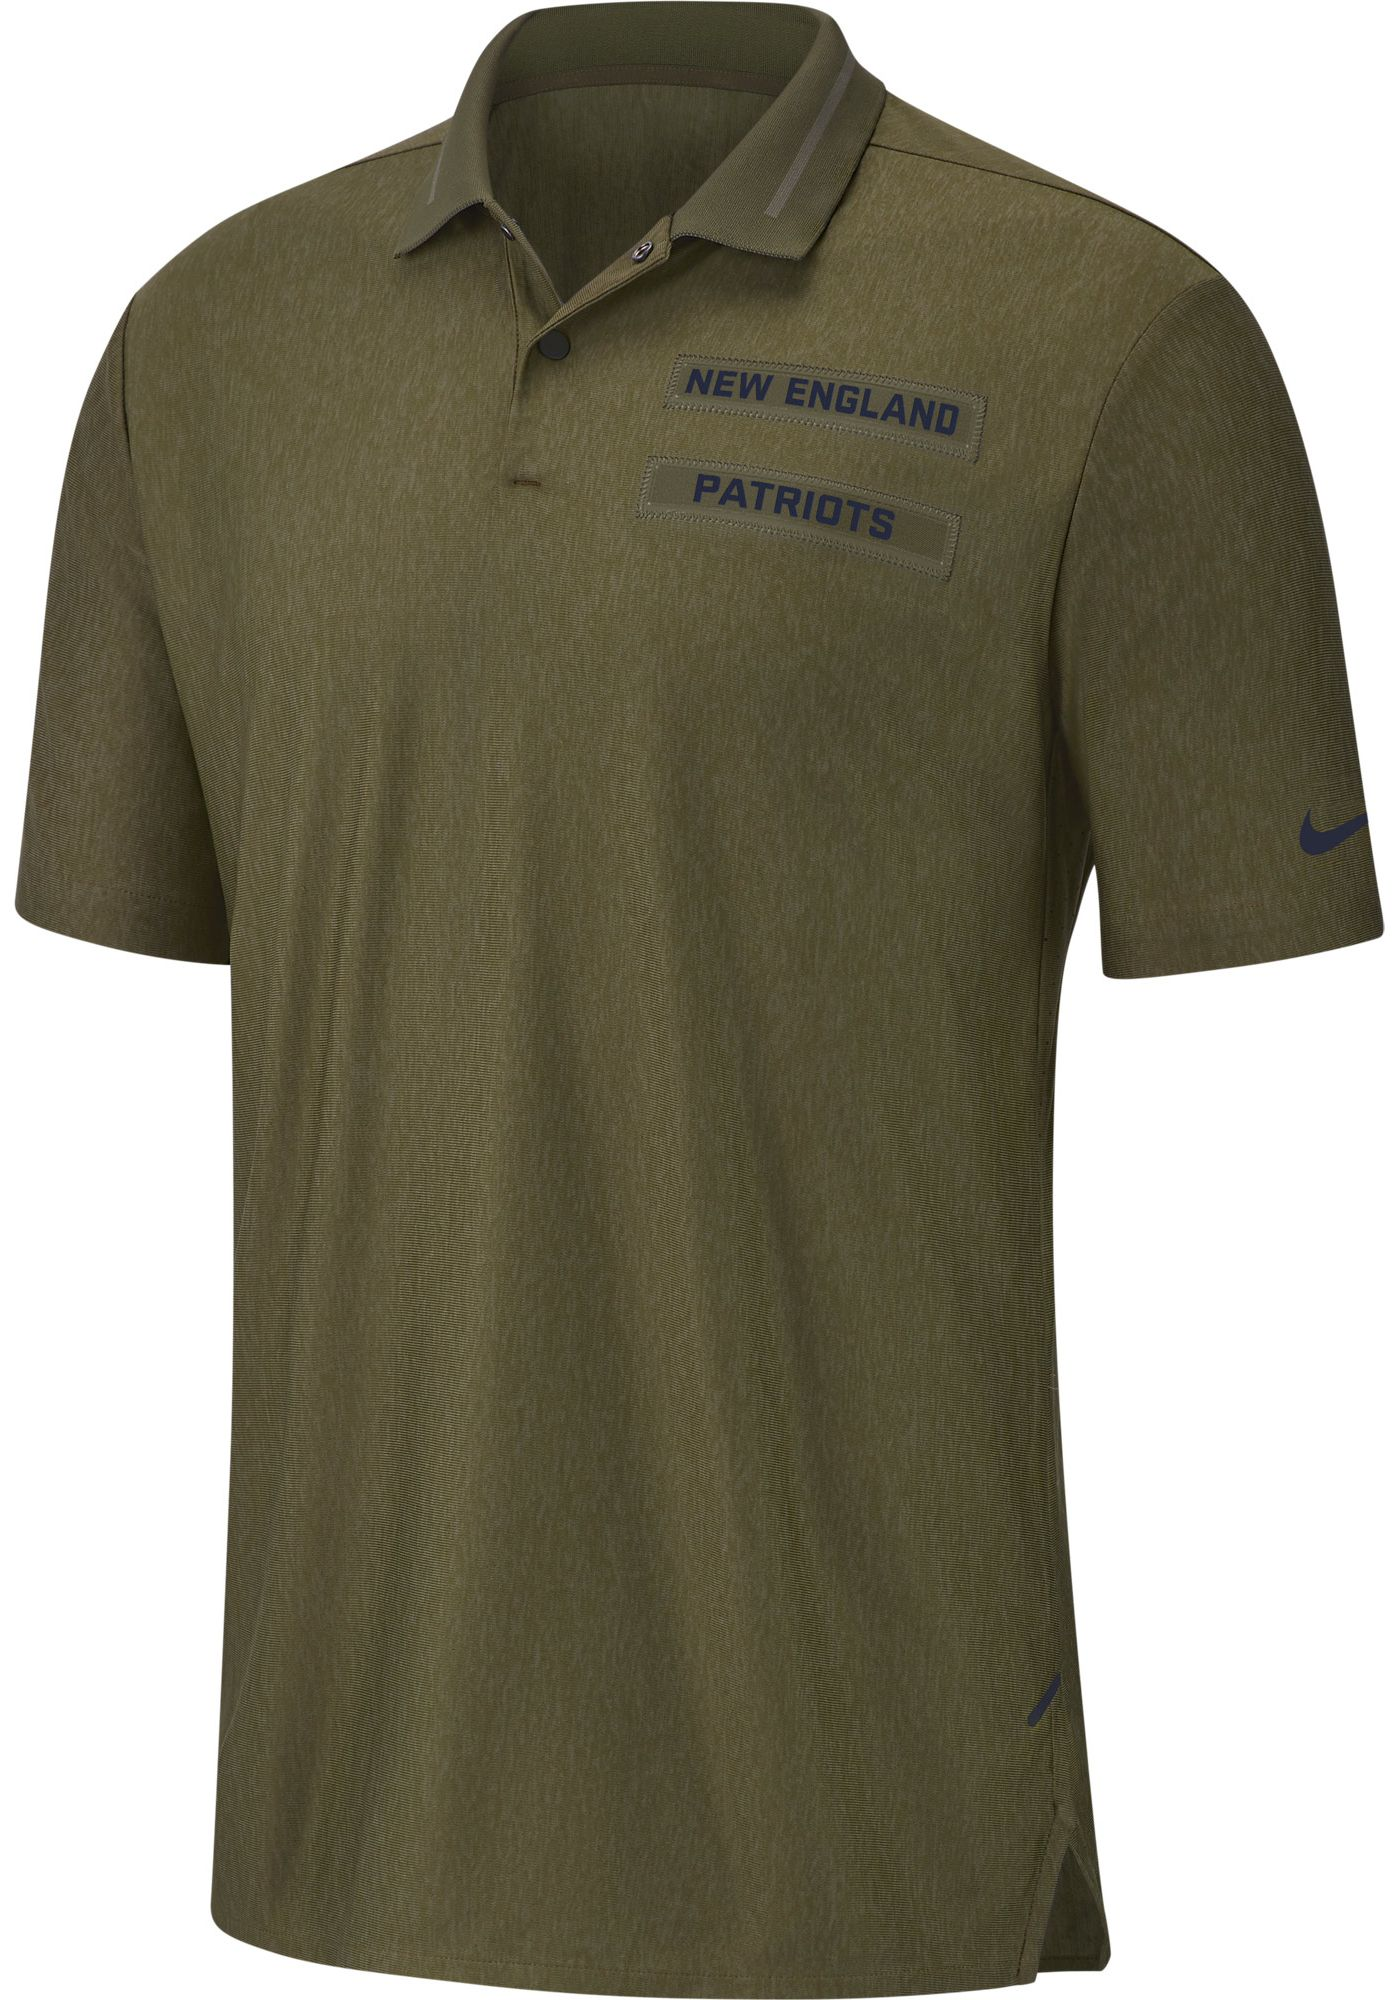 Nike Men's Salute to Service New England Patriots Performance Polo